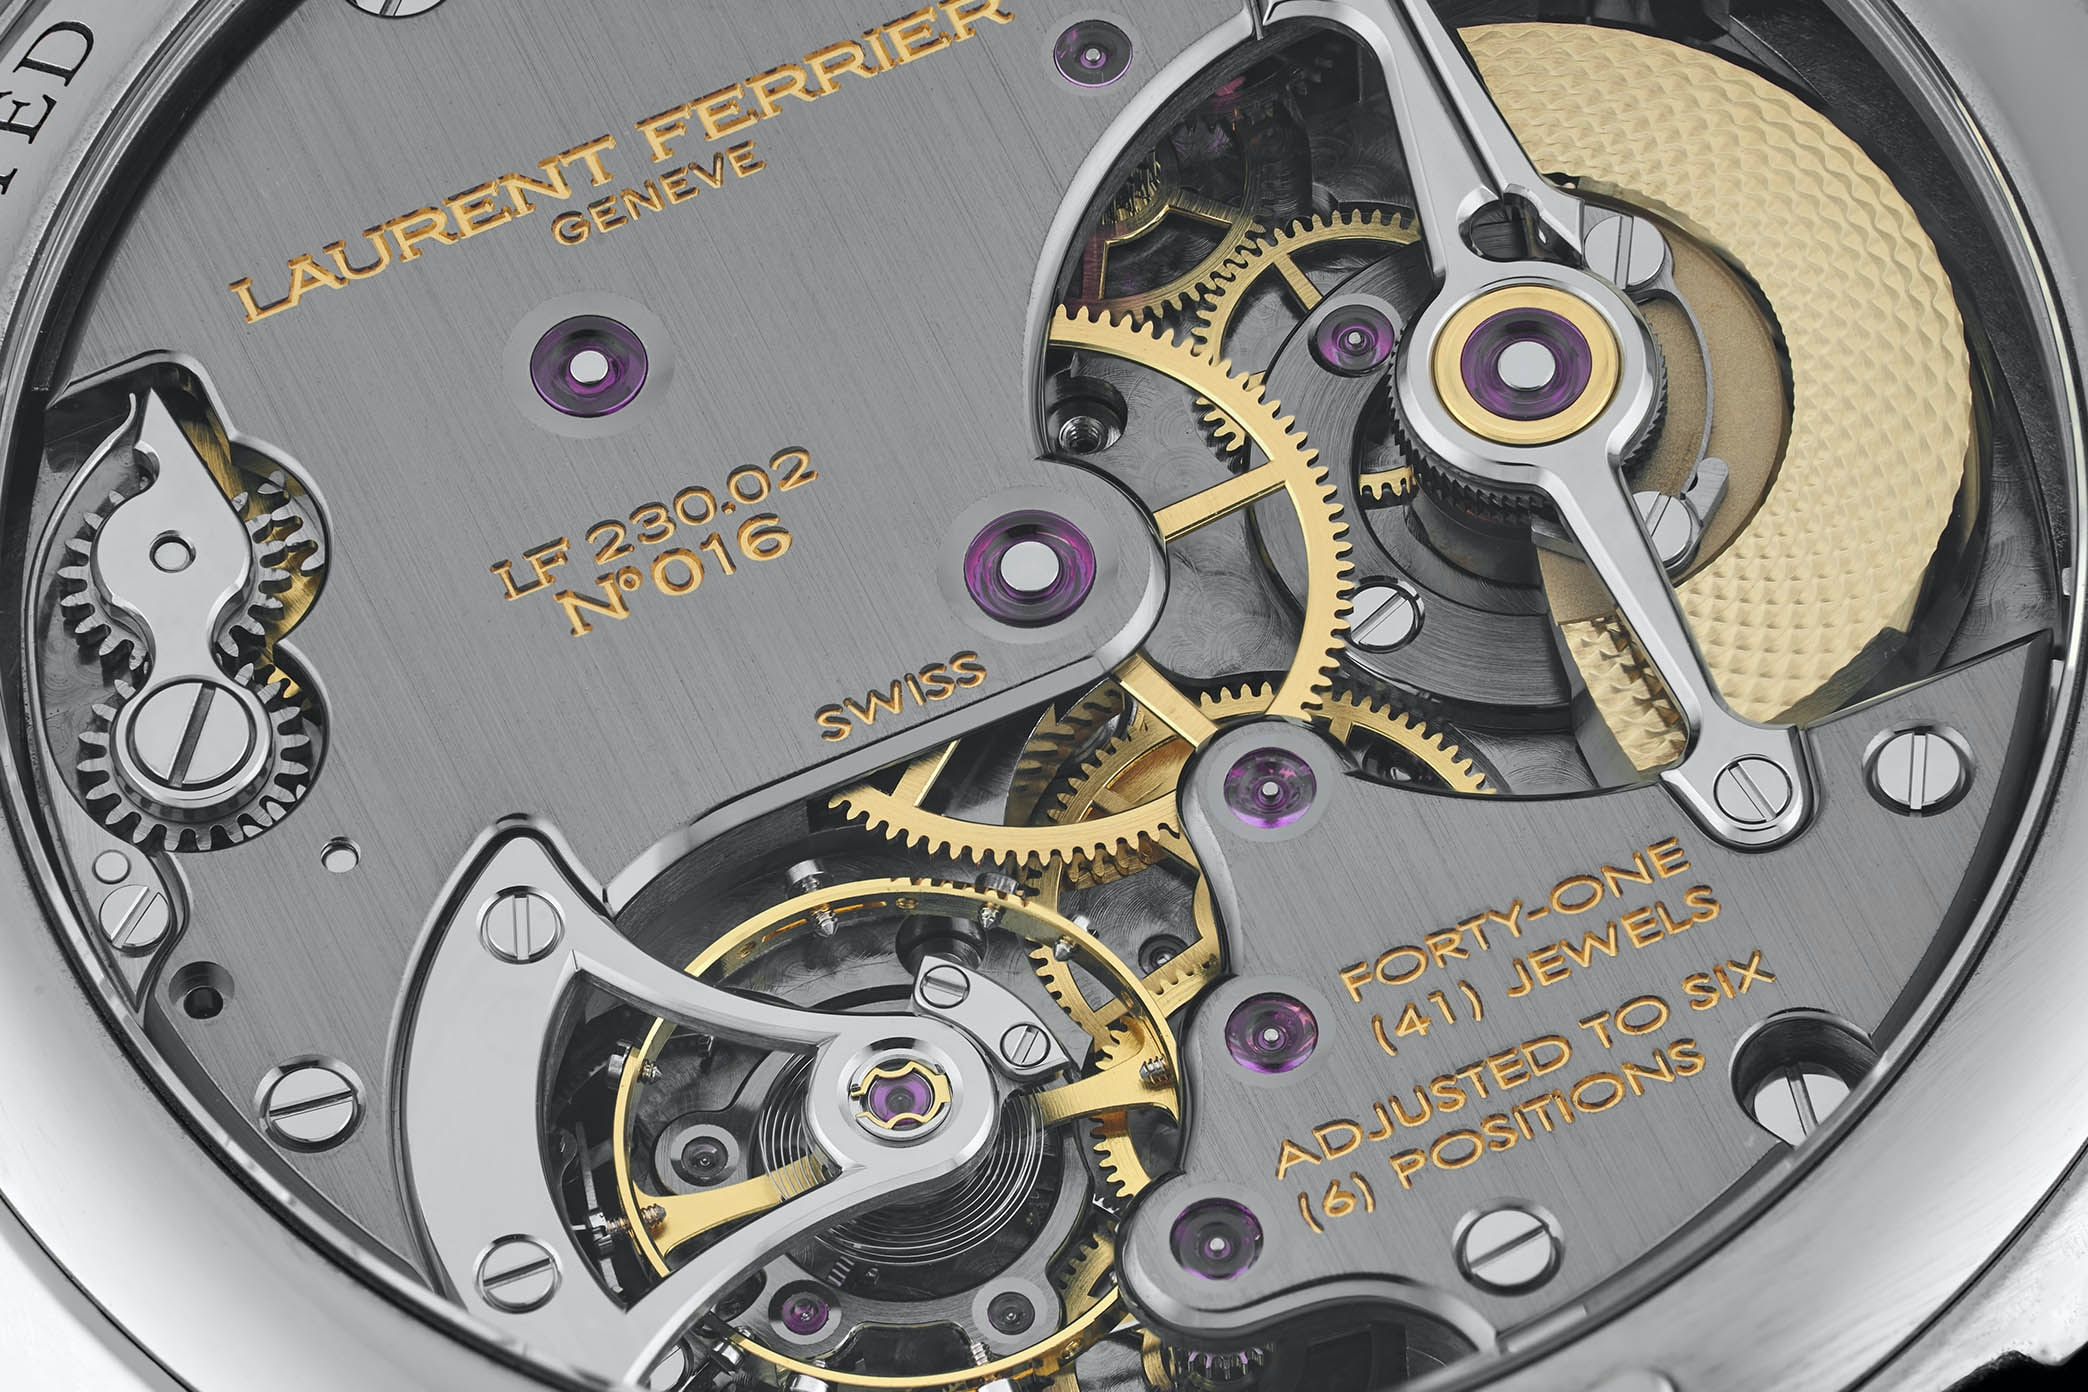 Le laurentferrier movementdetail2.jpg?ixlib=rails 1.1 In The Shop: Introducing The Laurent Ferrier Traveller Limited Edition For HODINKEE In The Shop: Introducing The Laurent Ferrier Traveller Limited Edition For HODINKEE LE LaurentFerrier MovementDetail2